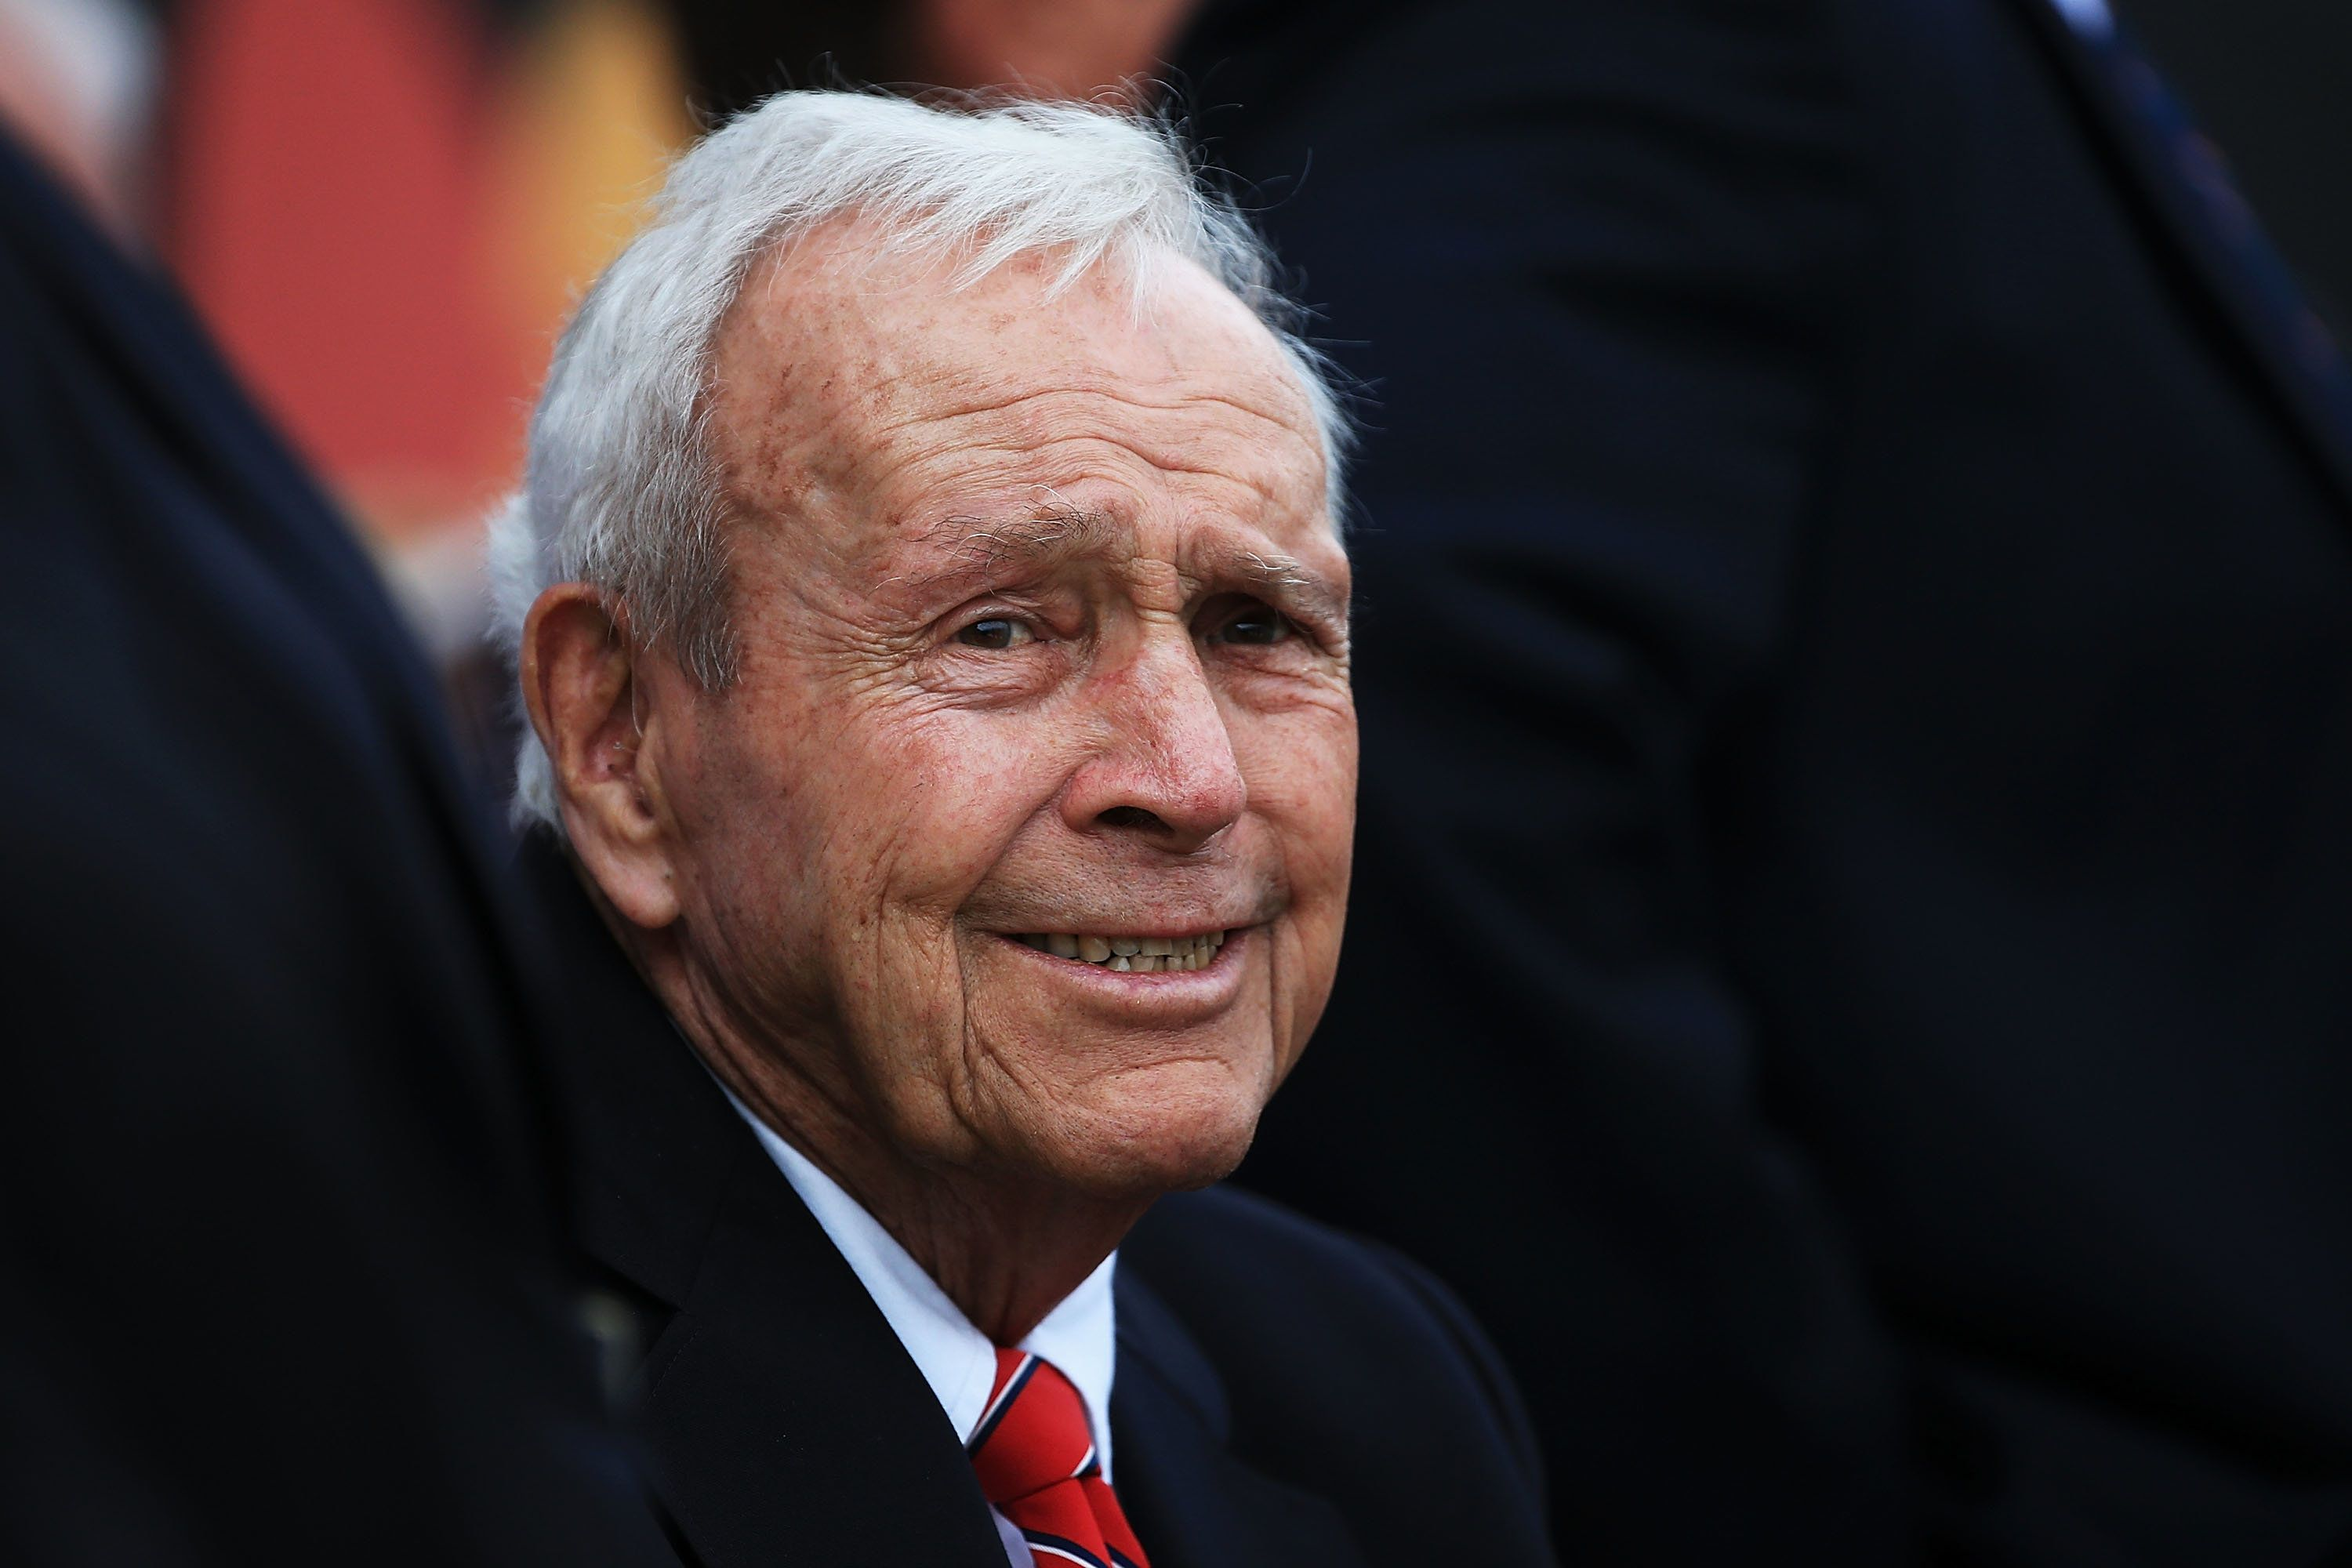 ORLANDO, FL - MARCH 20:  Arnold Palmer watches action on the 18th green during the final round of the Arnold Palmer Invitational Presented by MasterCard at Bay Hill Club and Lodge on March 20, 2016 in Orlando, Florida.  (Photo by Sam Greenwood/Getty Images)